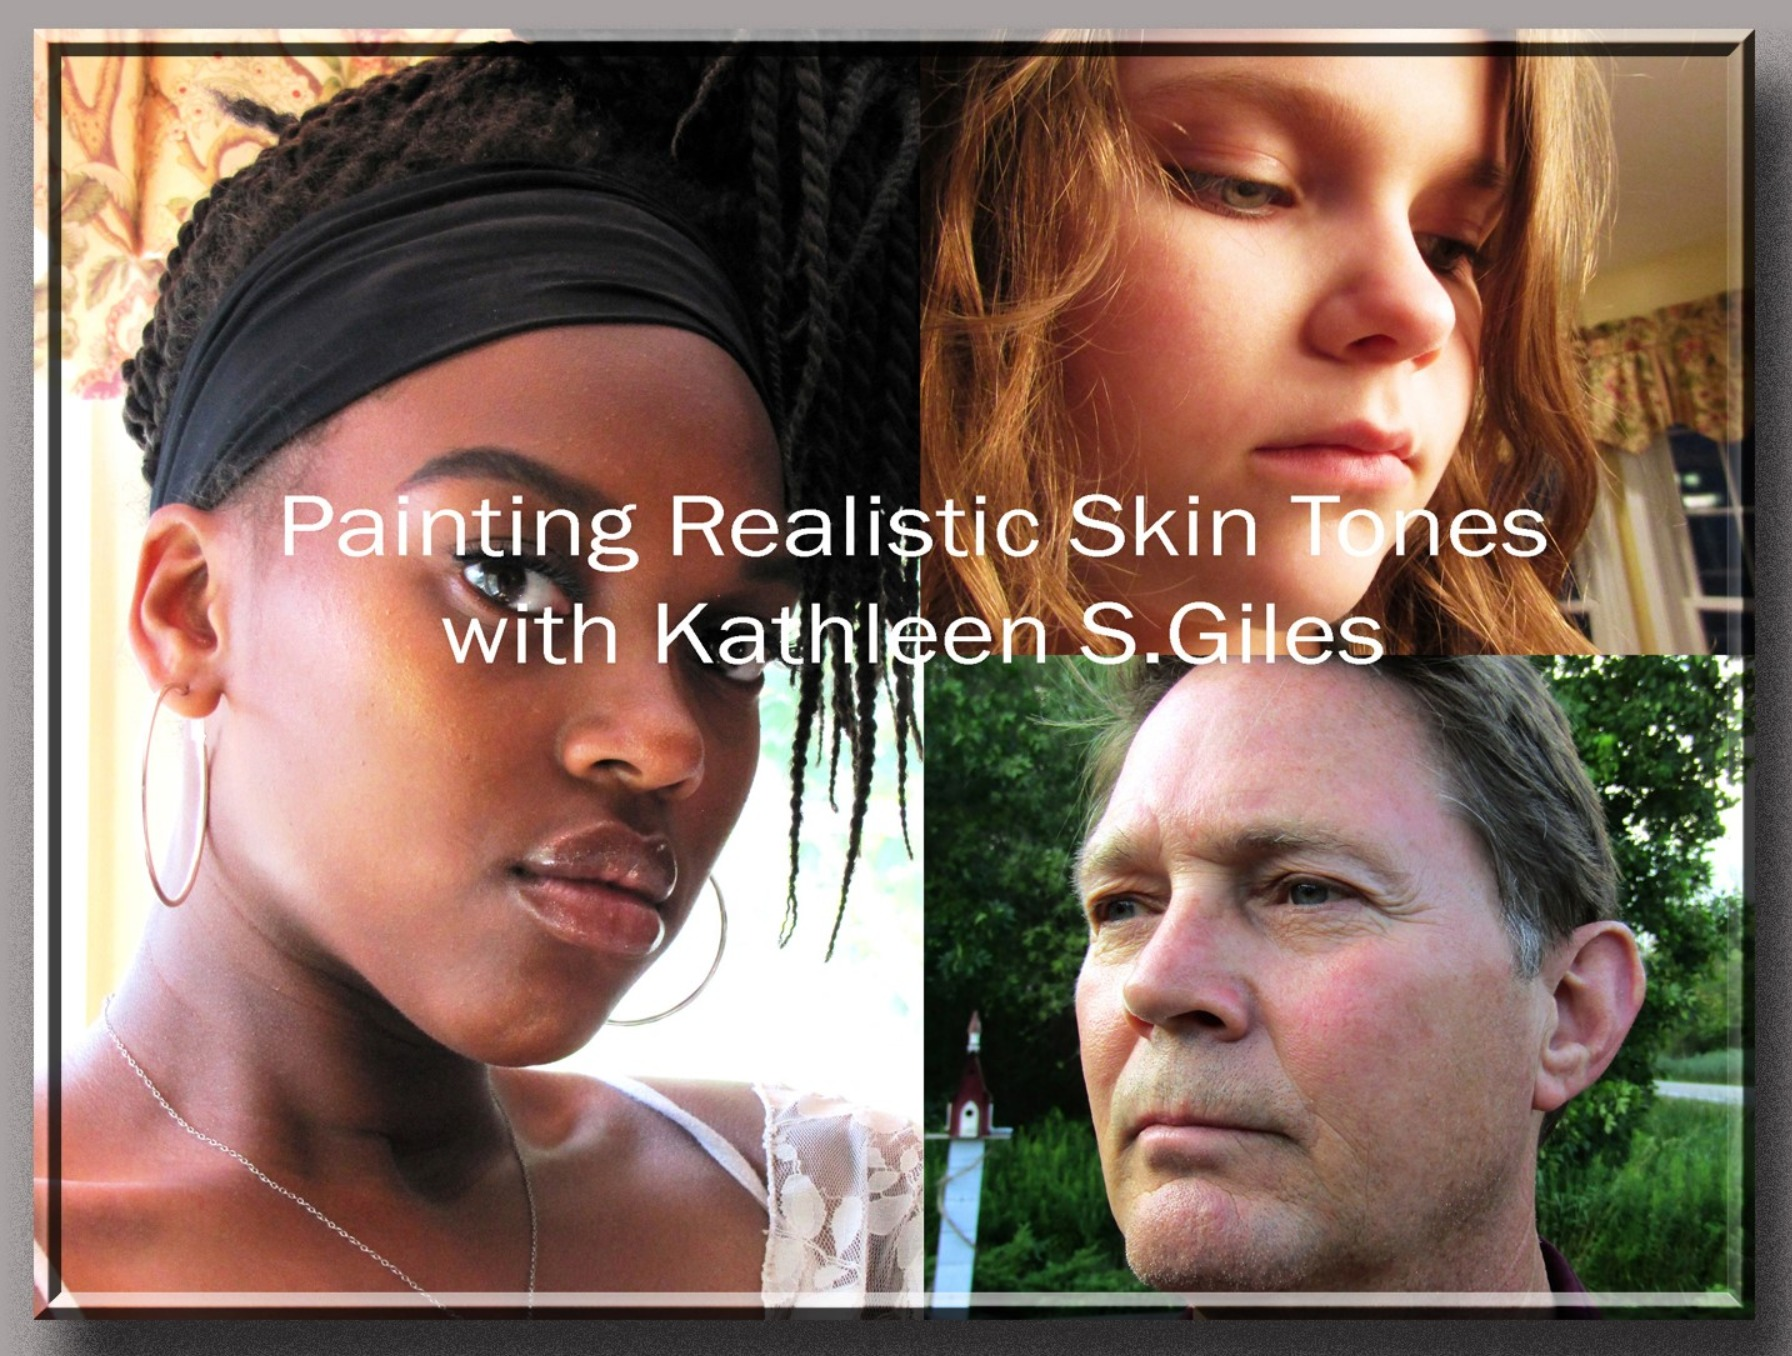 Painting Realistic Skin Tones ~ Workshop (Previously recorded)